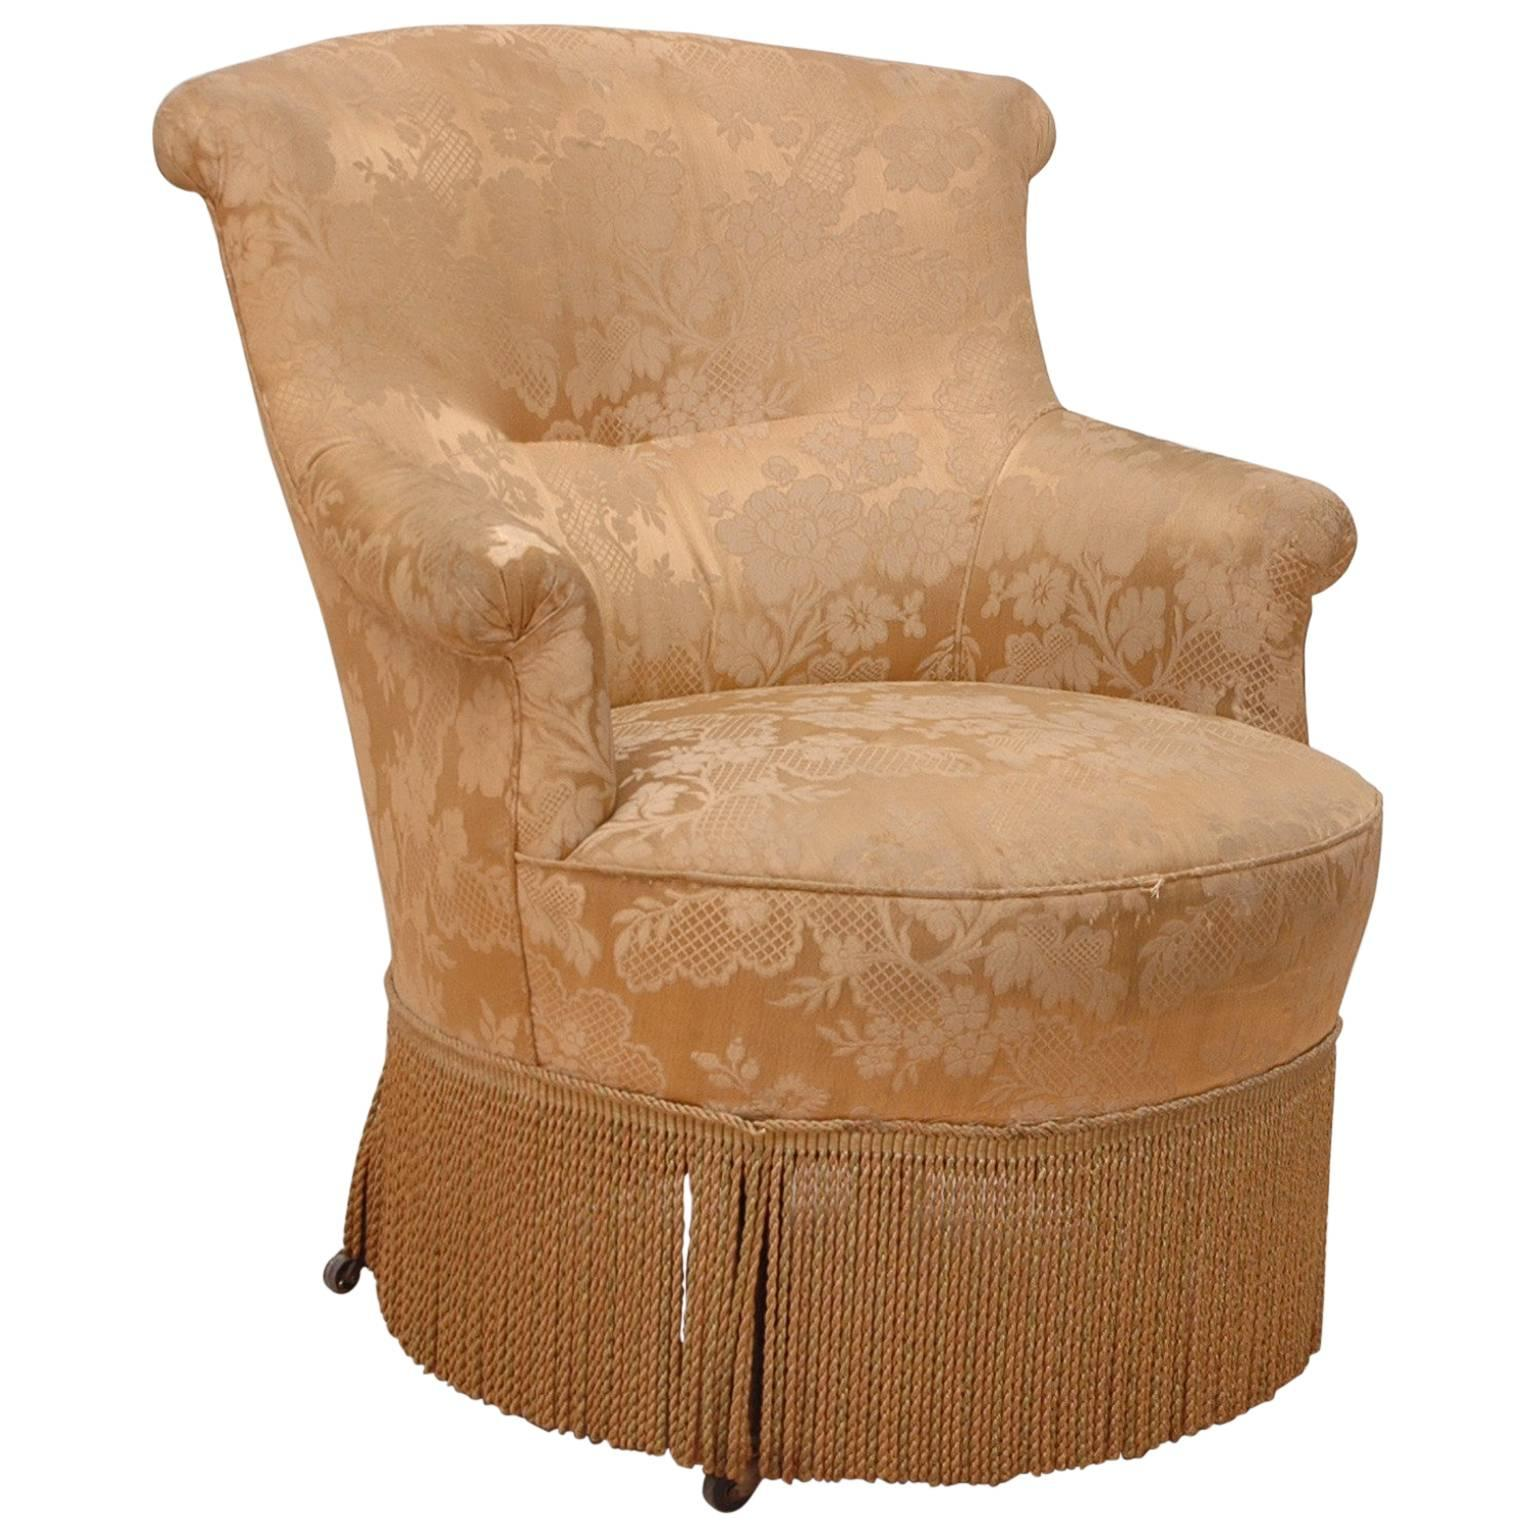 brown slipper chair computer chairs on sale 19th century french napoleon iii upholstered armchair or for